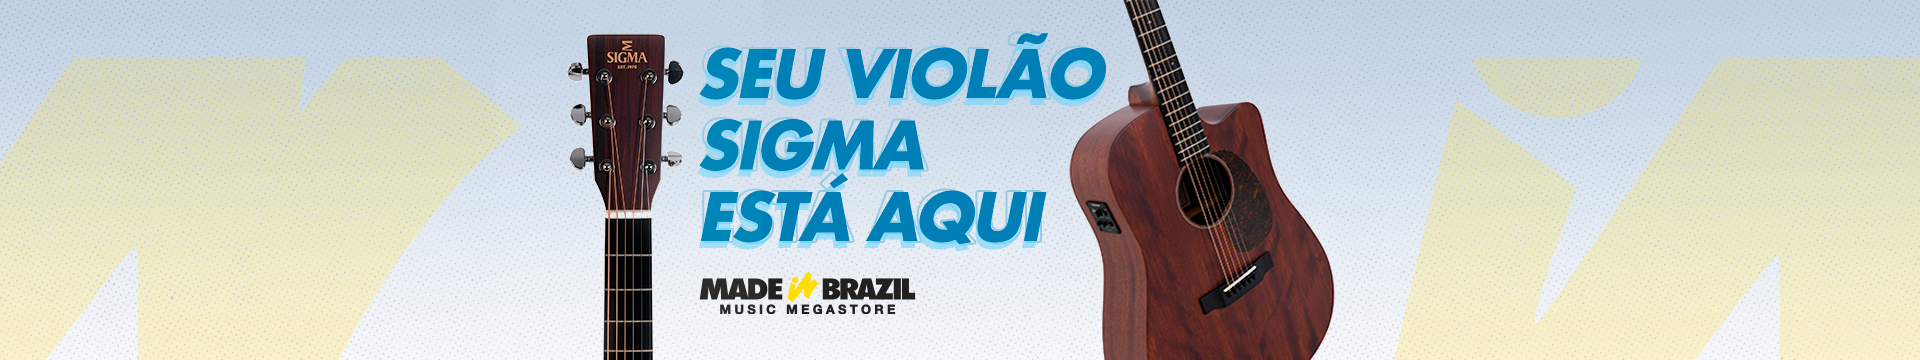 Violões Sigma na Made in Brazil